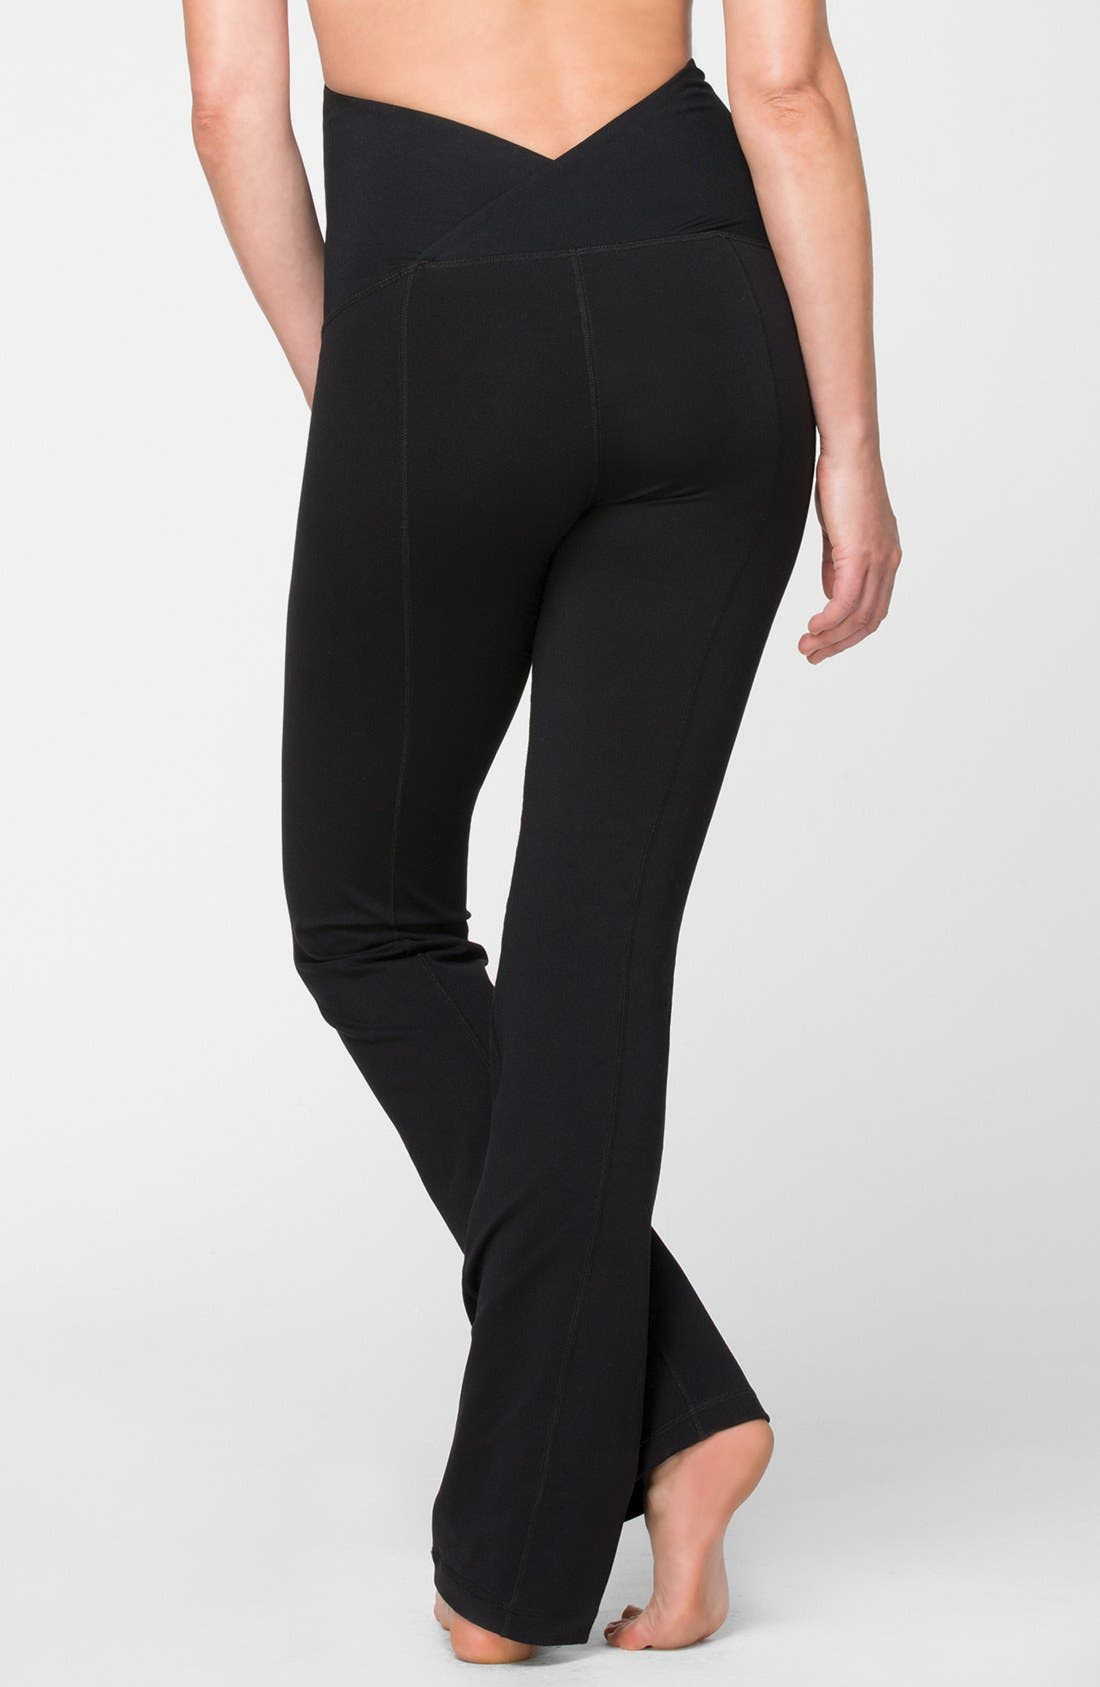 Active Maternity Pants with Crossover Panel,                             Alternate thumbnail 2, color,                             001